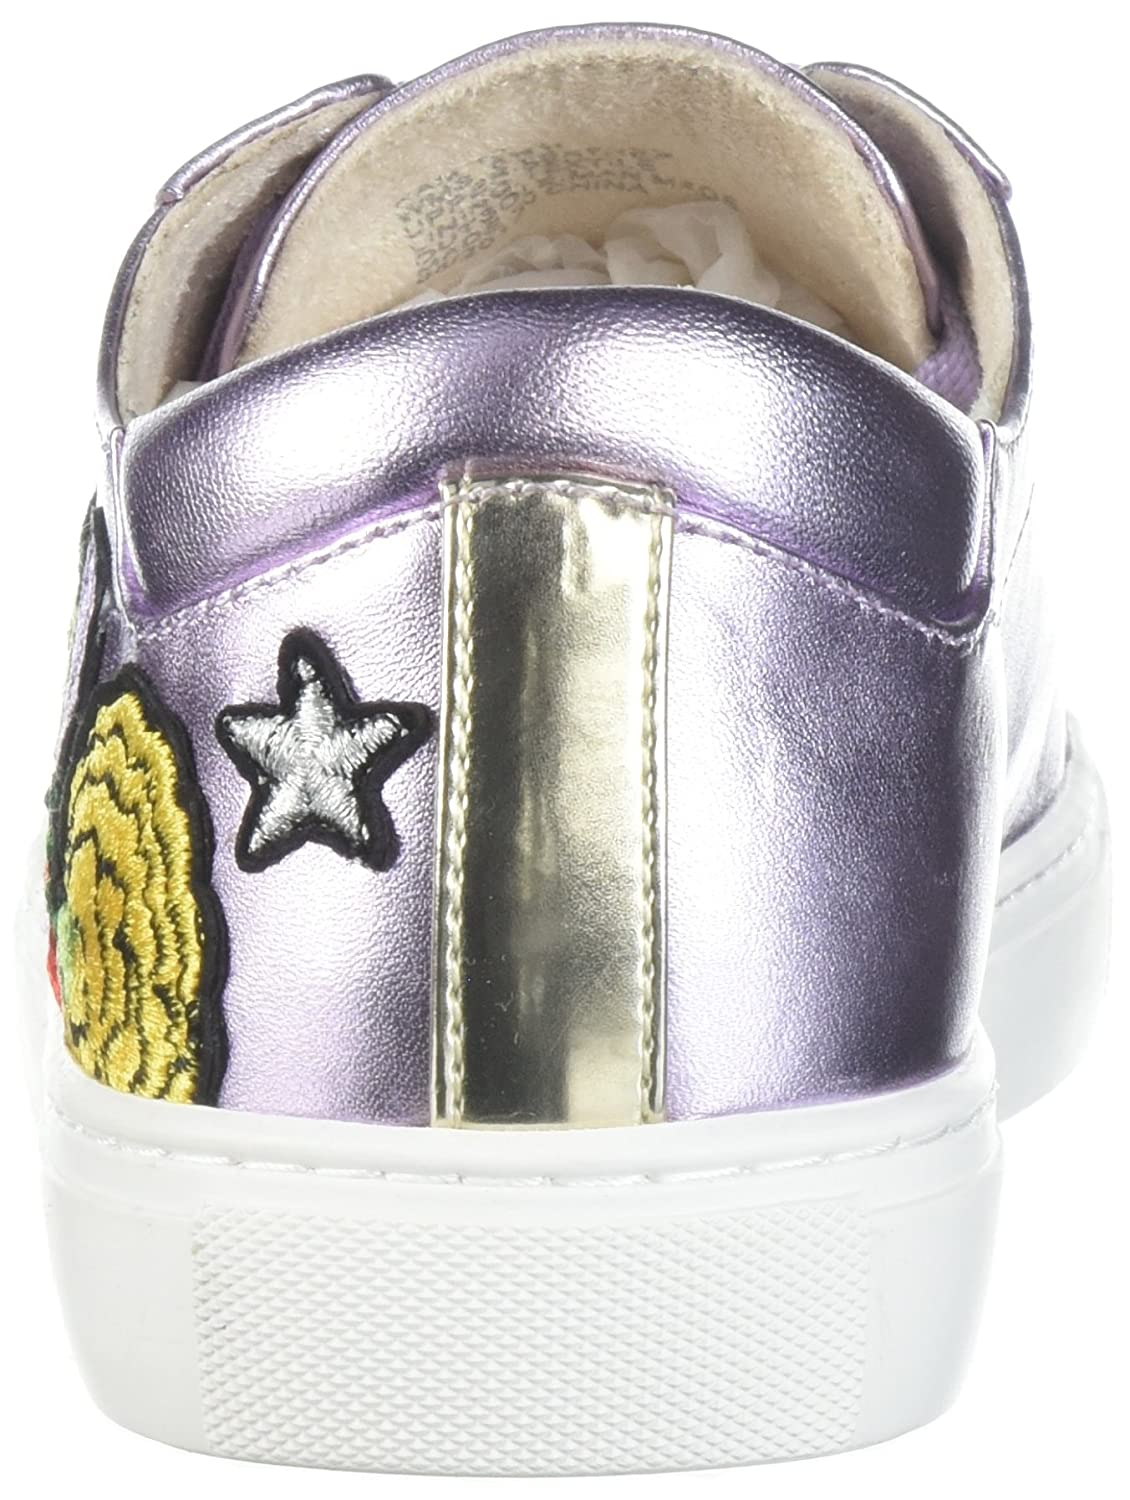 Kenneth Cole New York Women's Kam 10 Floral Embroidered Lace-up Sneaker B077ZL4RJ4 8.5 M US|Lavender